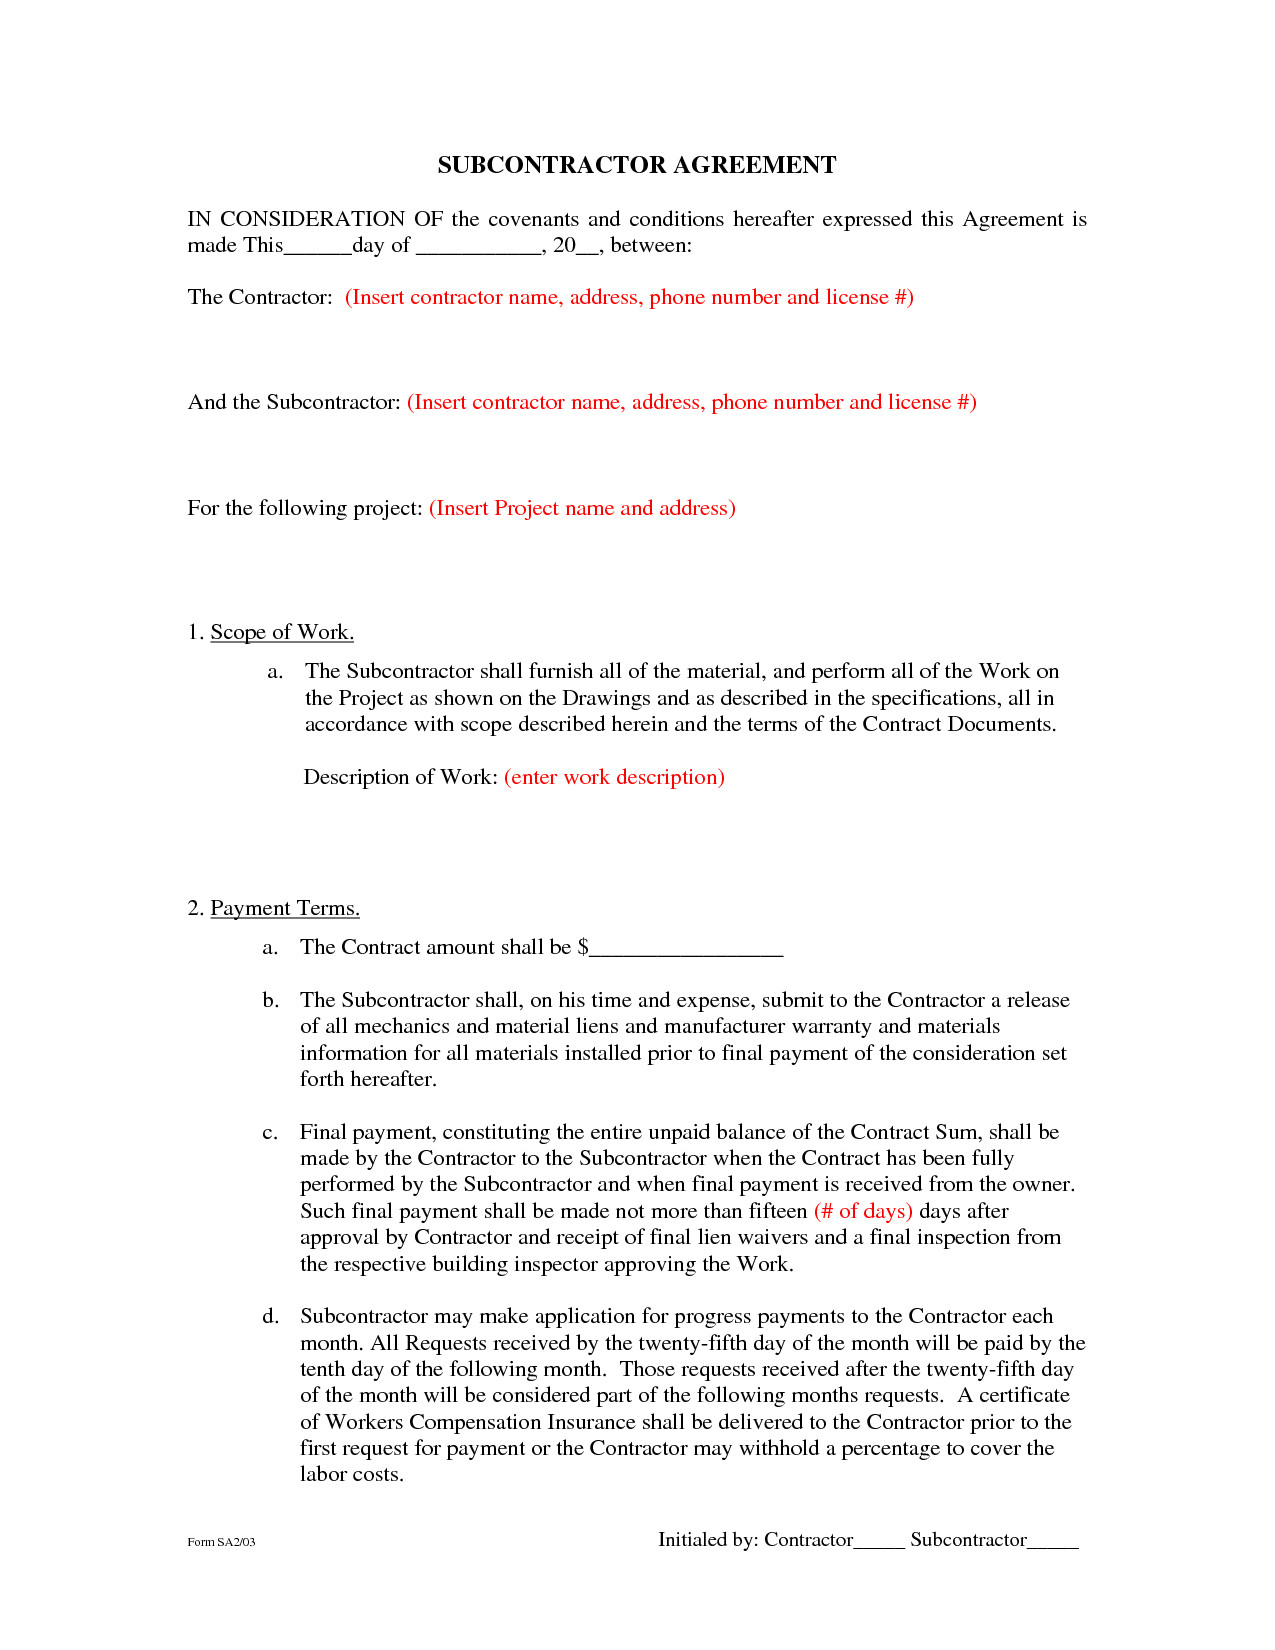 Subcontractor Agreement Template Free Subcontractor Agreement forms by Beunaventuralongjas